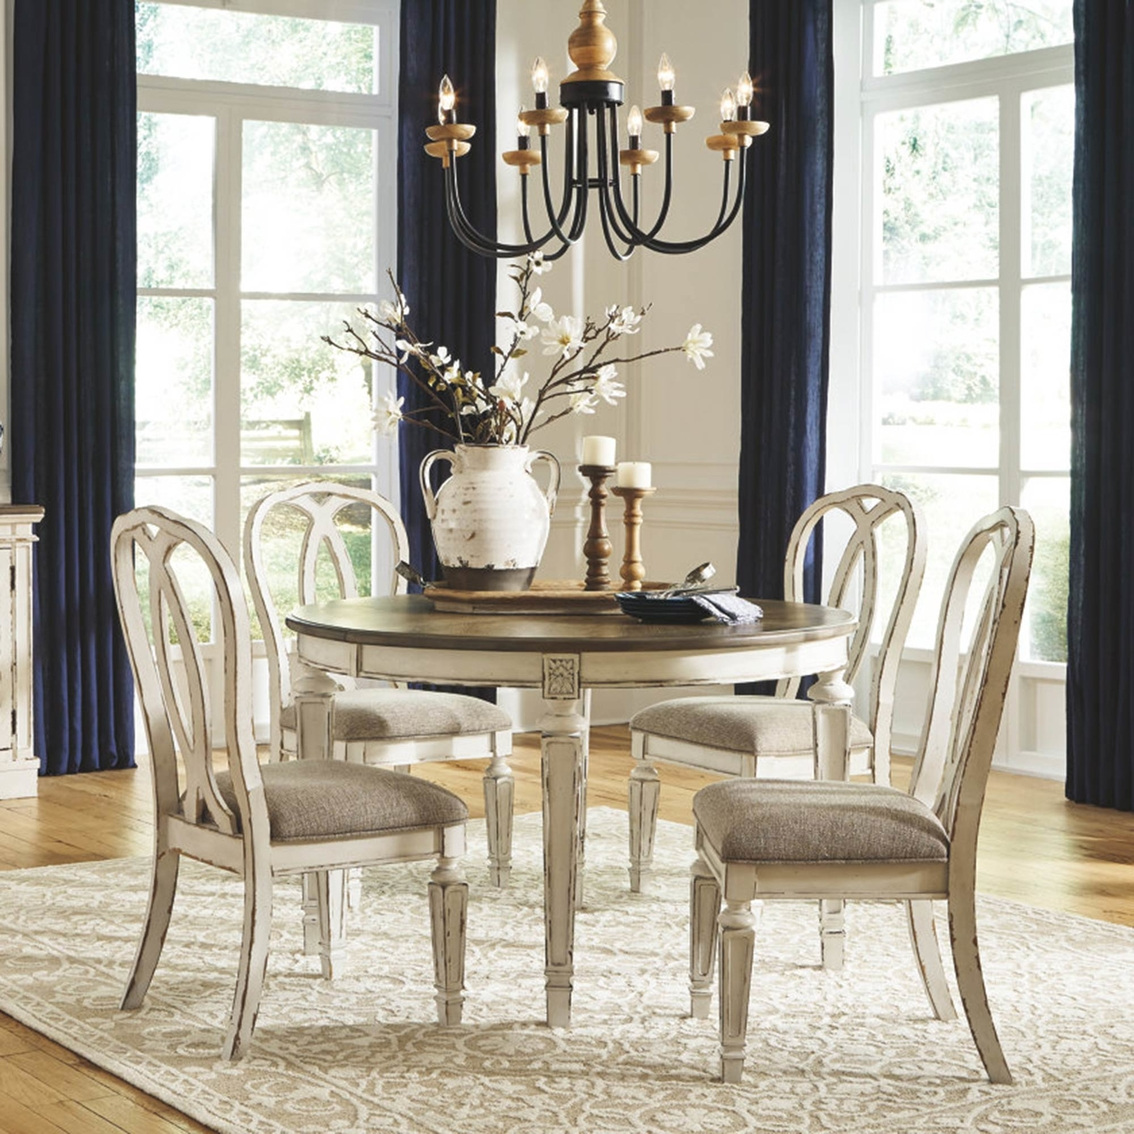 Signature Design By Ashley Realyn 5 Pc Oval Dining Set With Ribbon Back Chairs Dining Sets Furniture Appliances Shop The Exchange